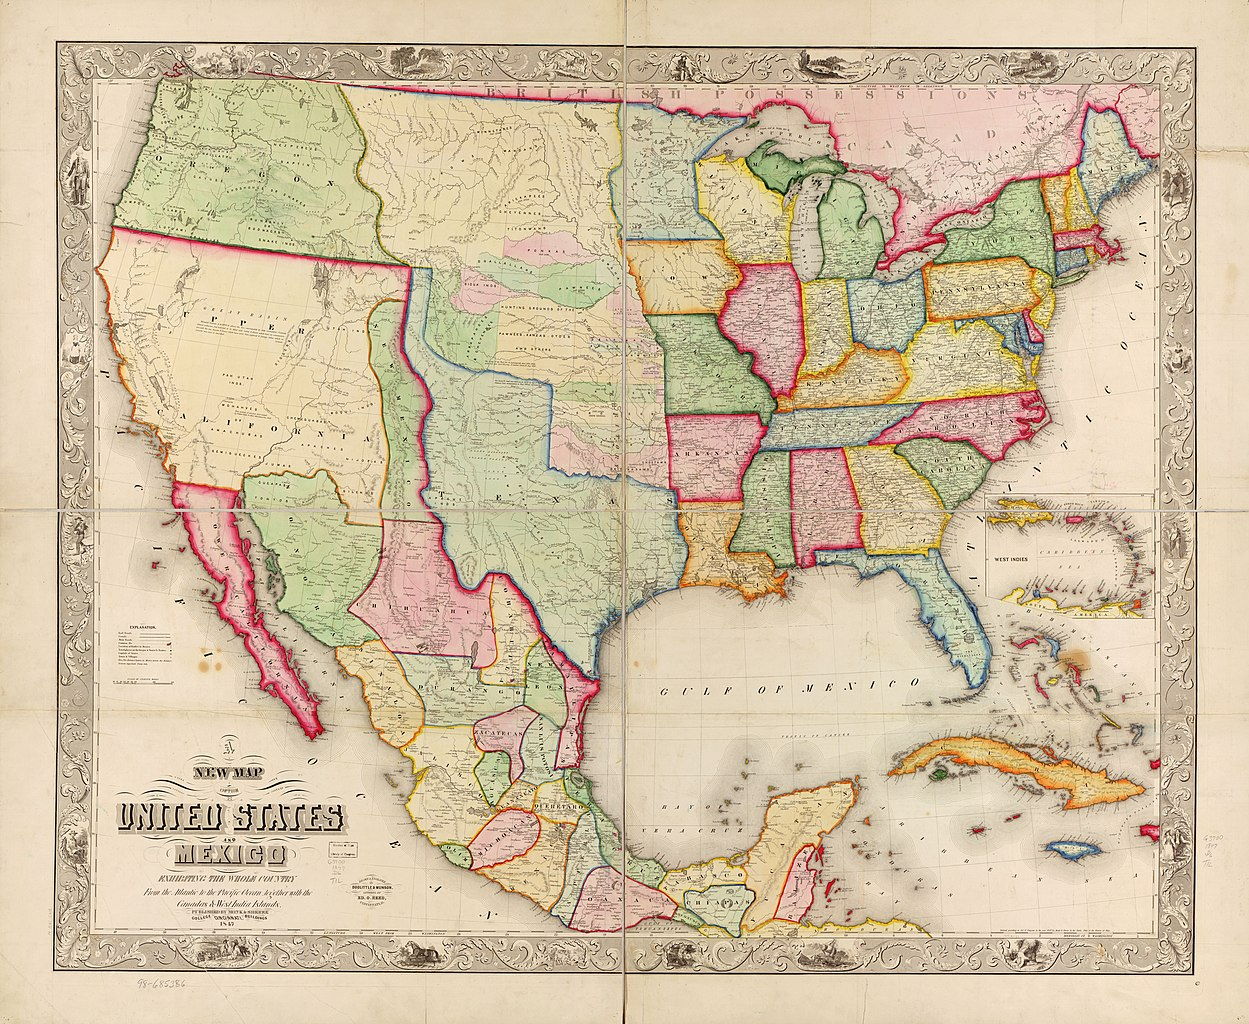 File:New map of the United States and Mexico. LOC 98685386 ...